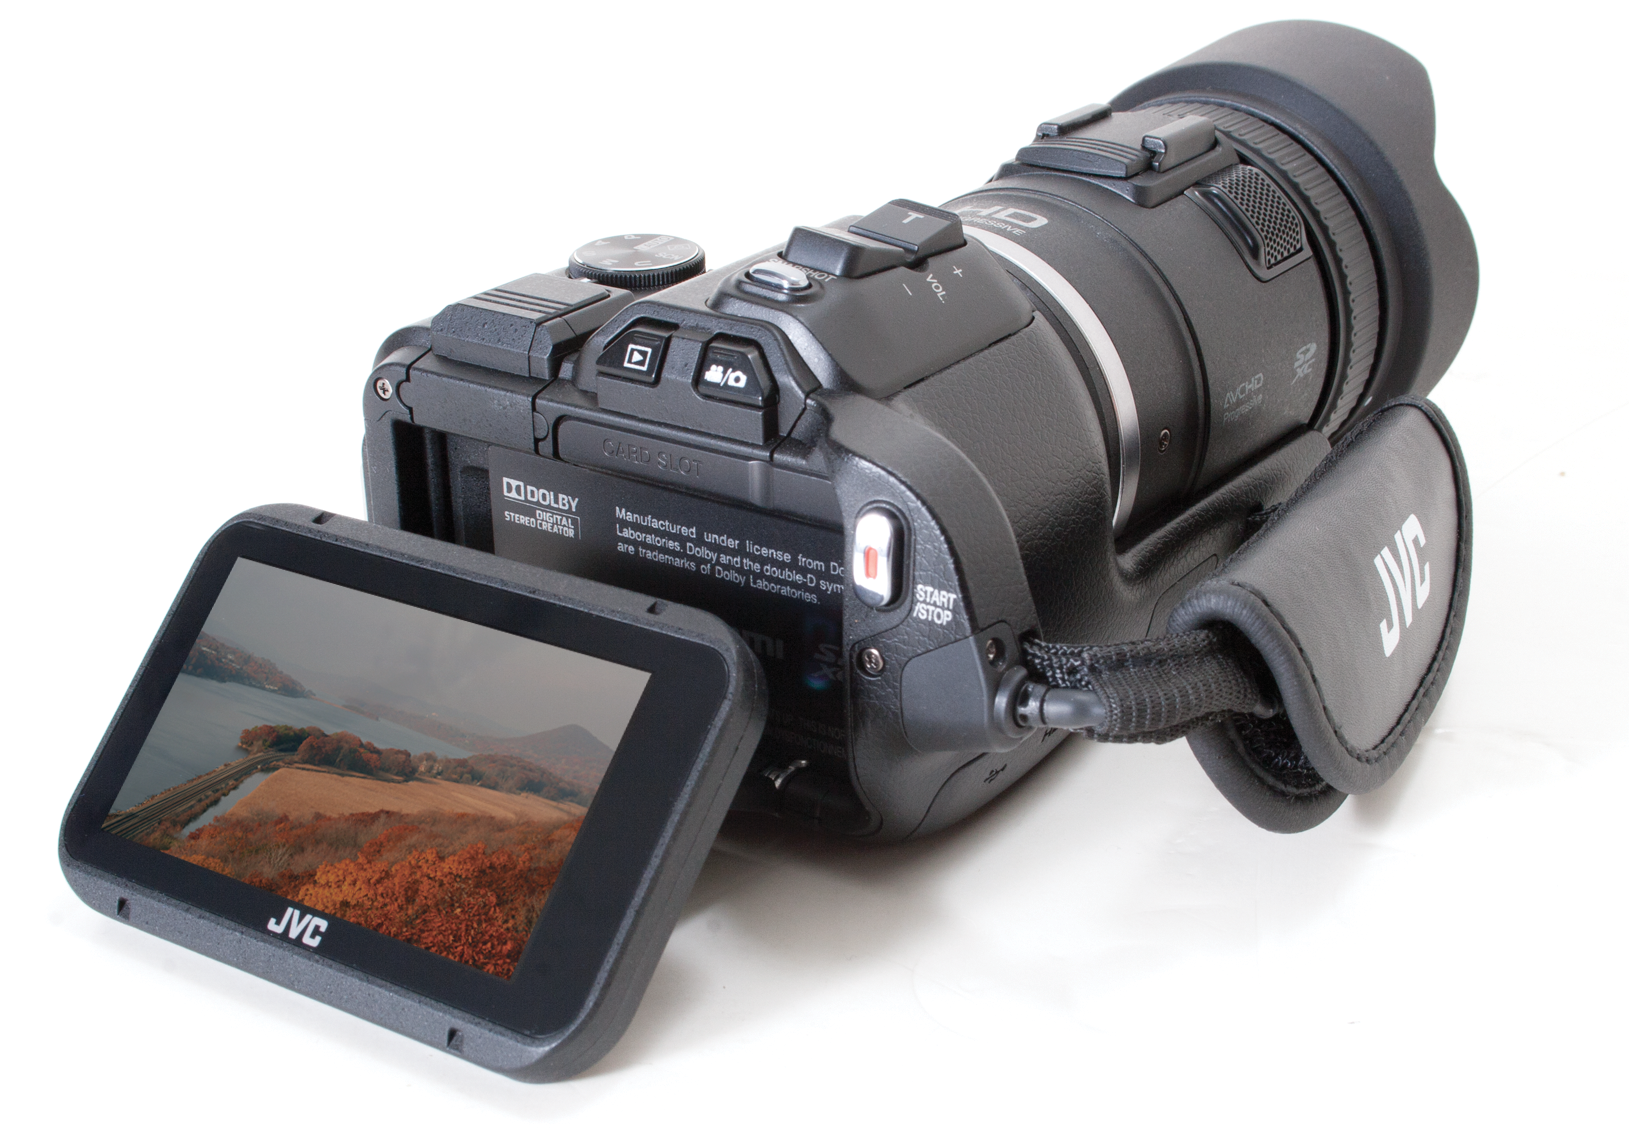 Rear view of JVC GC-PX100 camcorder